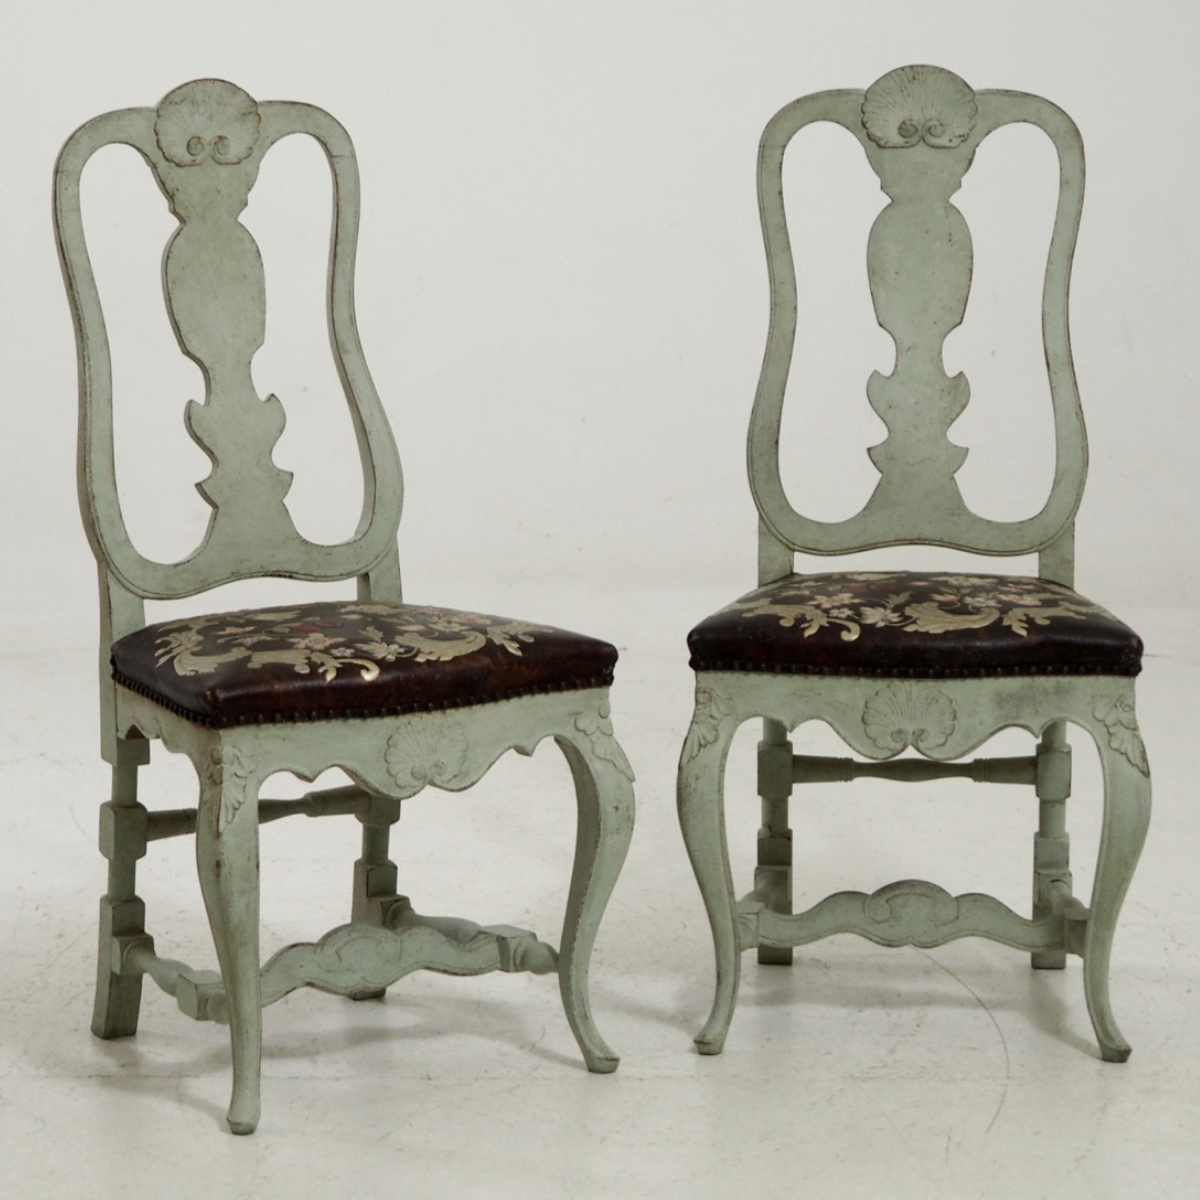 Scandinavian Chairs 13287 3d Pair Of Scandinavian Chairs With Original Guilted Leather Circa 100 Years Old